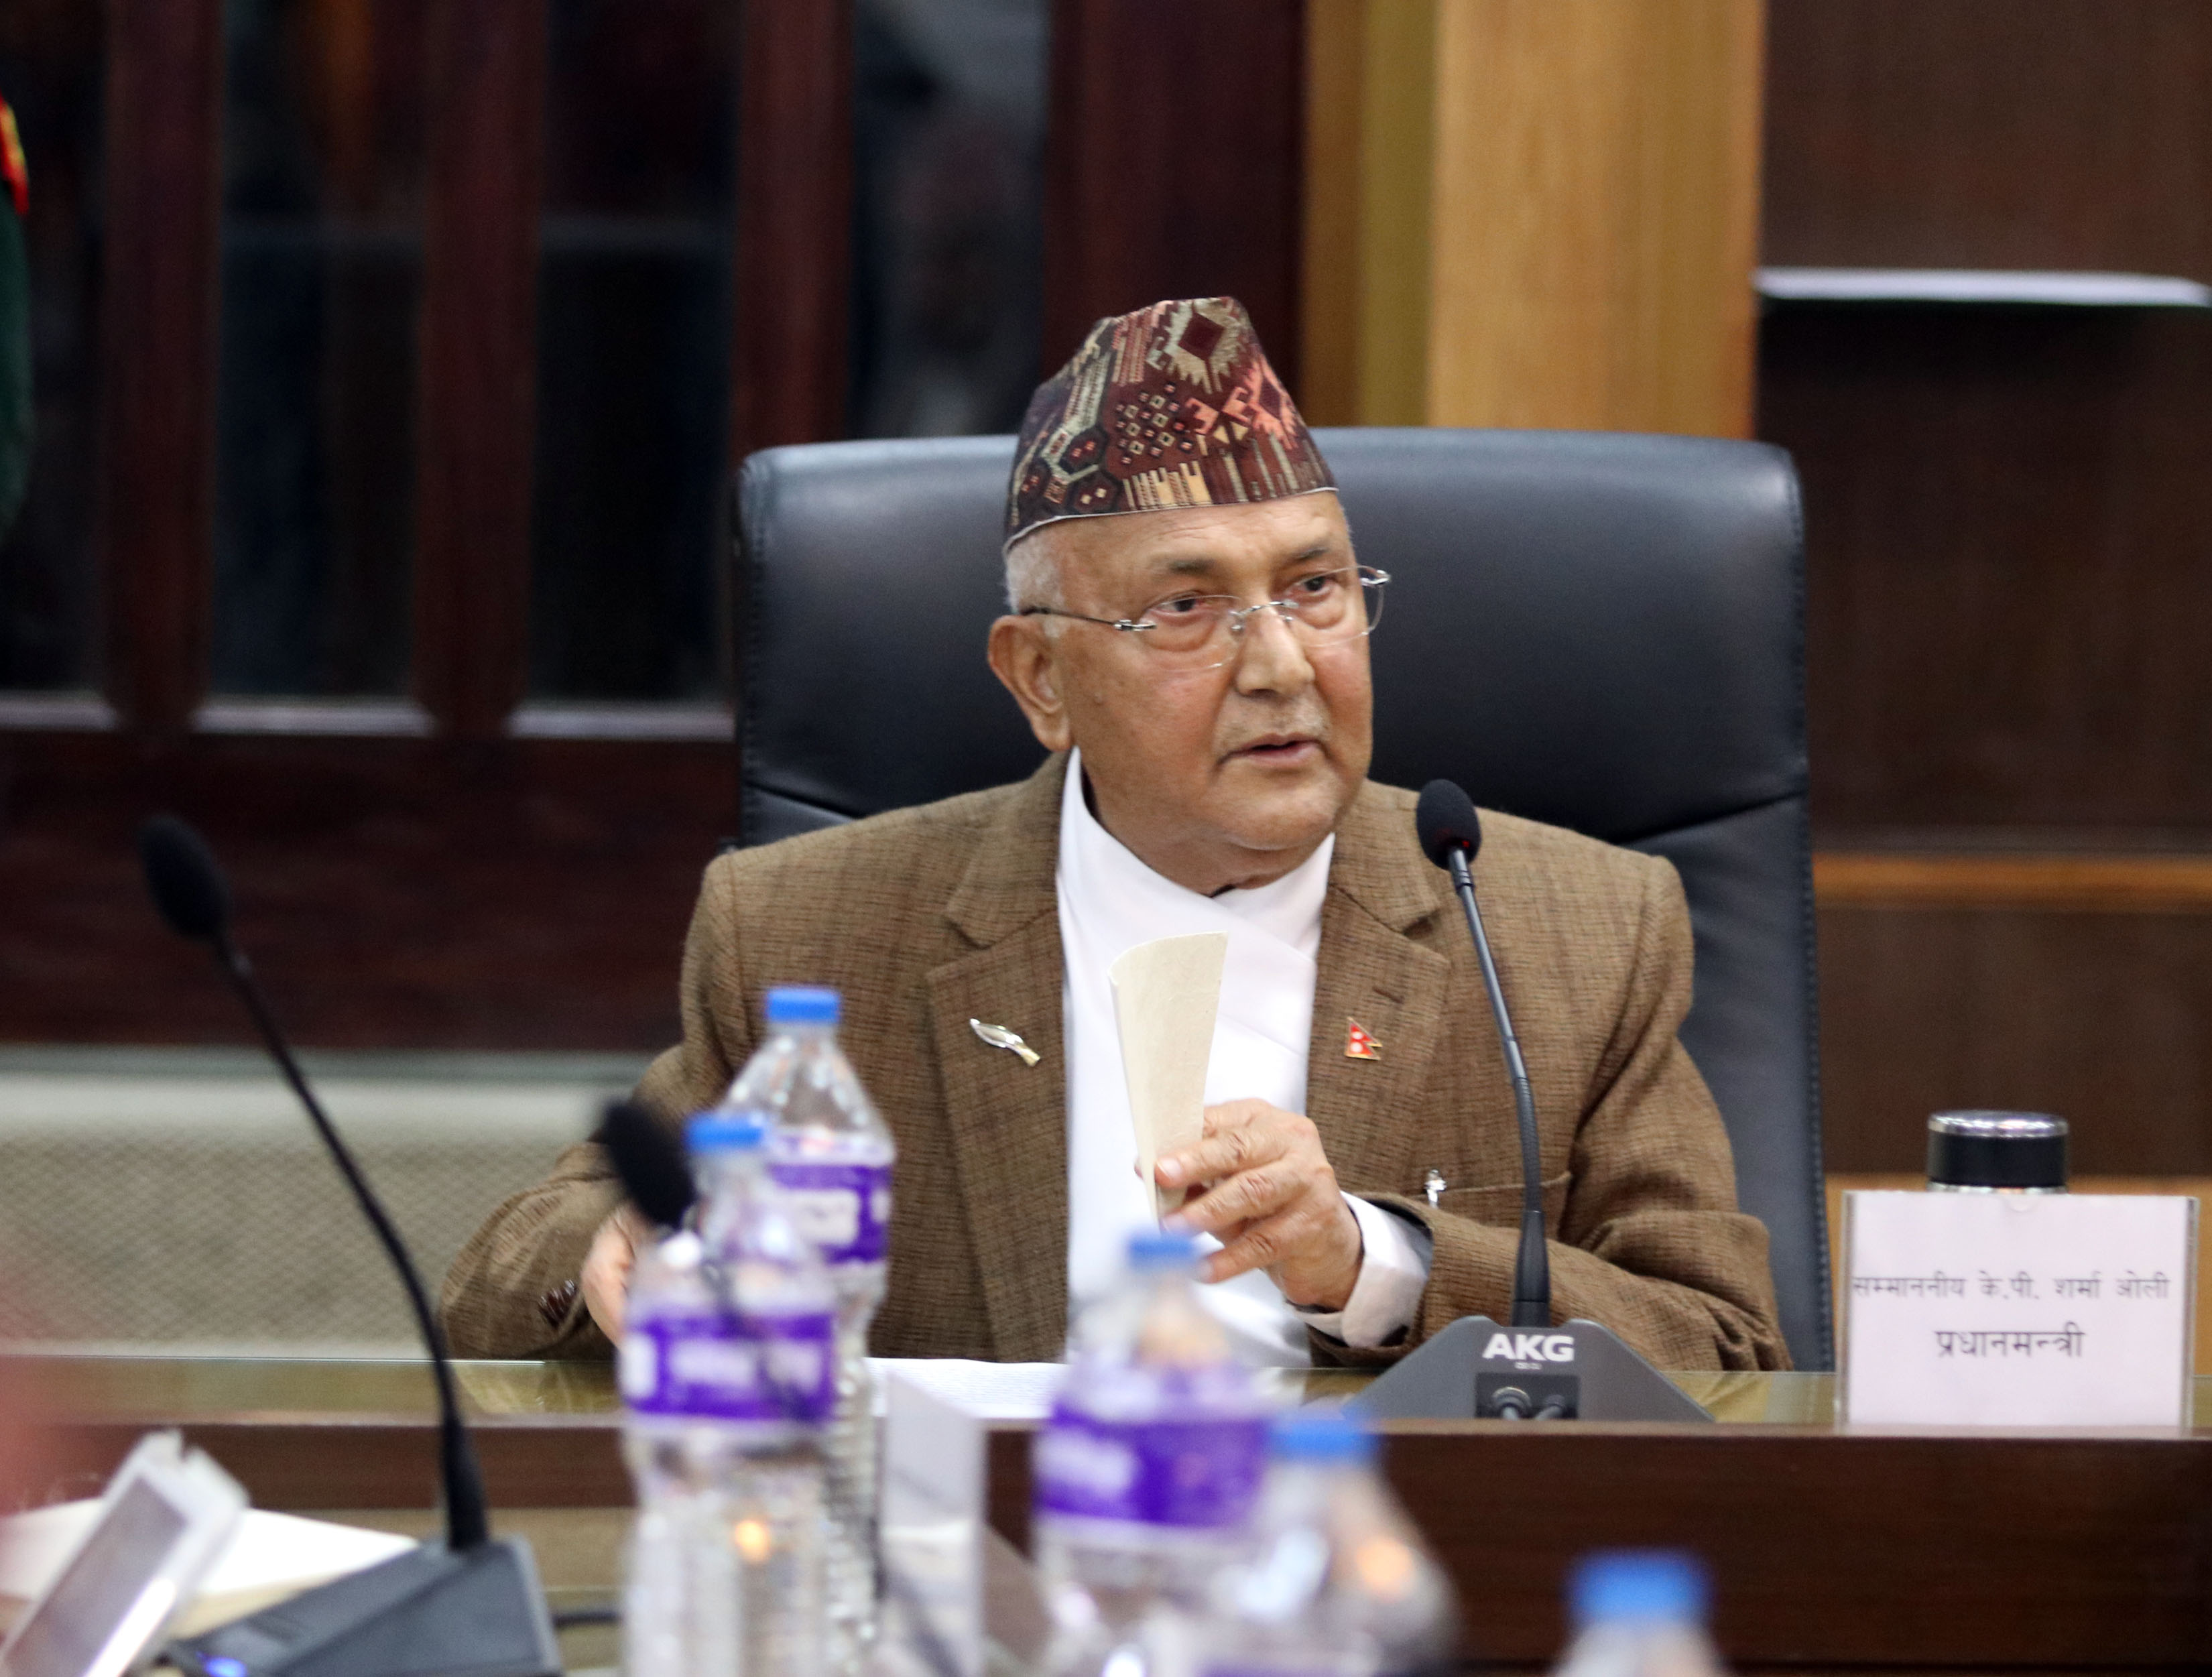 Prime Minister Kp Sharma Oli in a meeting with Nepal governmentu2019s secretaries and chief of law enforcement agencies at Office of the Prime Minister and Council of Ministers on Sunday, March 18, 2018. Photo: Roshan Sapkota/RSSn